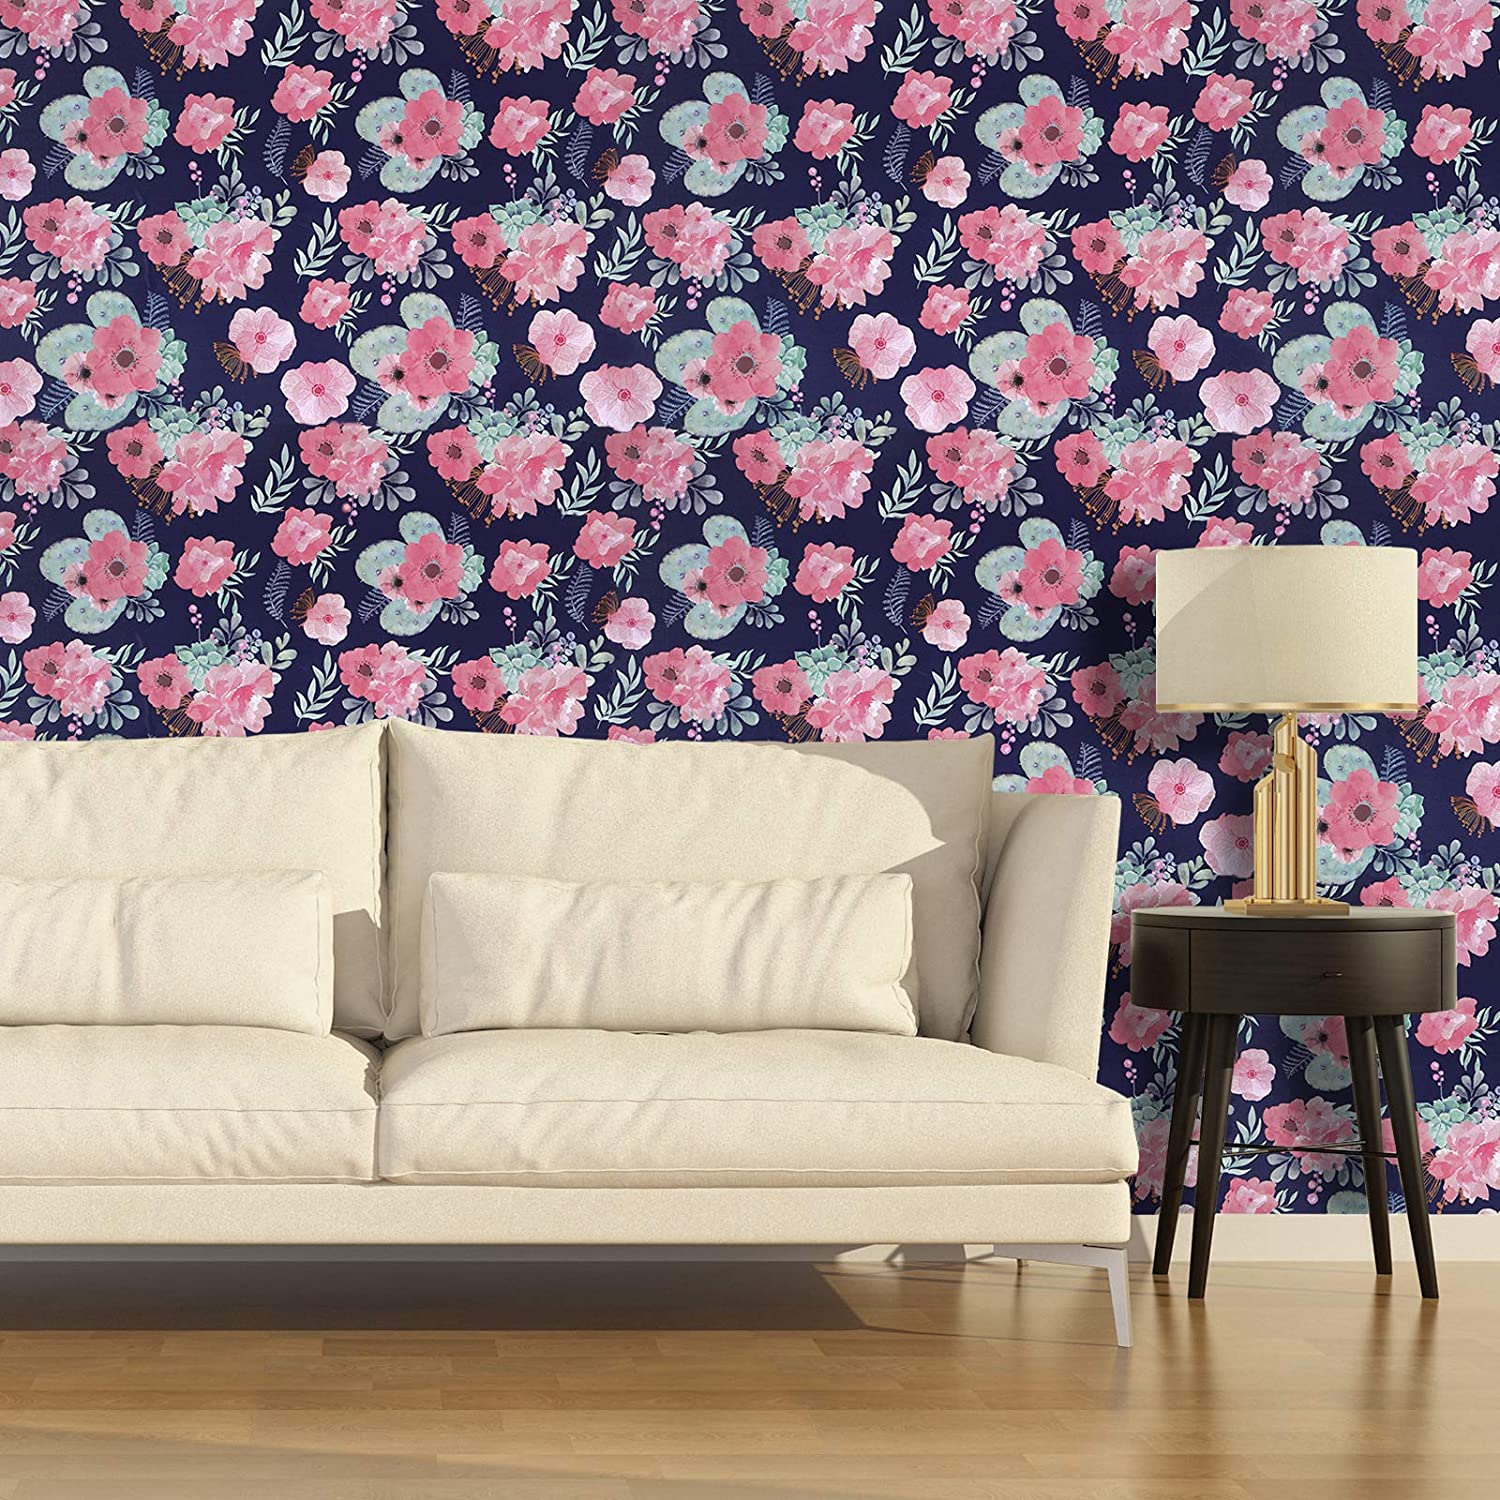 Buy Caltero Floral Wallpaper 17 7 X 118 Watercolor Flowers Wallpaper Peel And Stick Contact Paper Multicoloured Perennial Blooms Wallpaper Vinyl For Living Room Bedroom Countertop Cabinet Online In Germany B08hrvfb5c